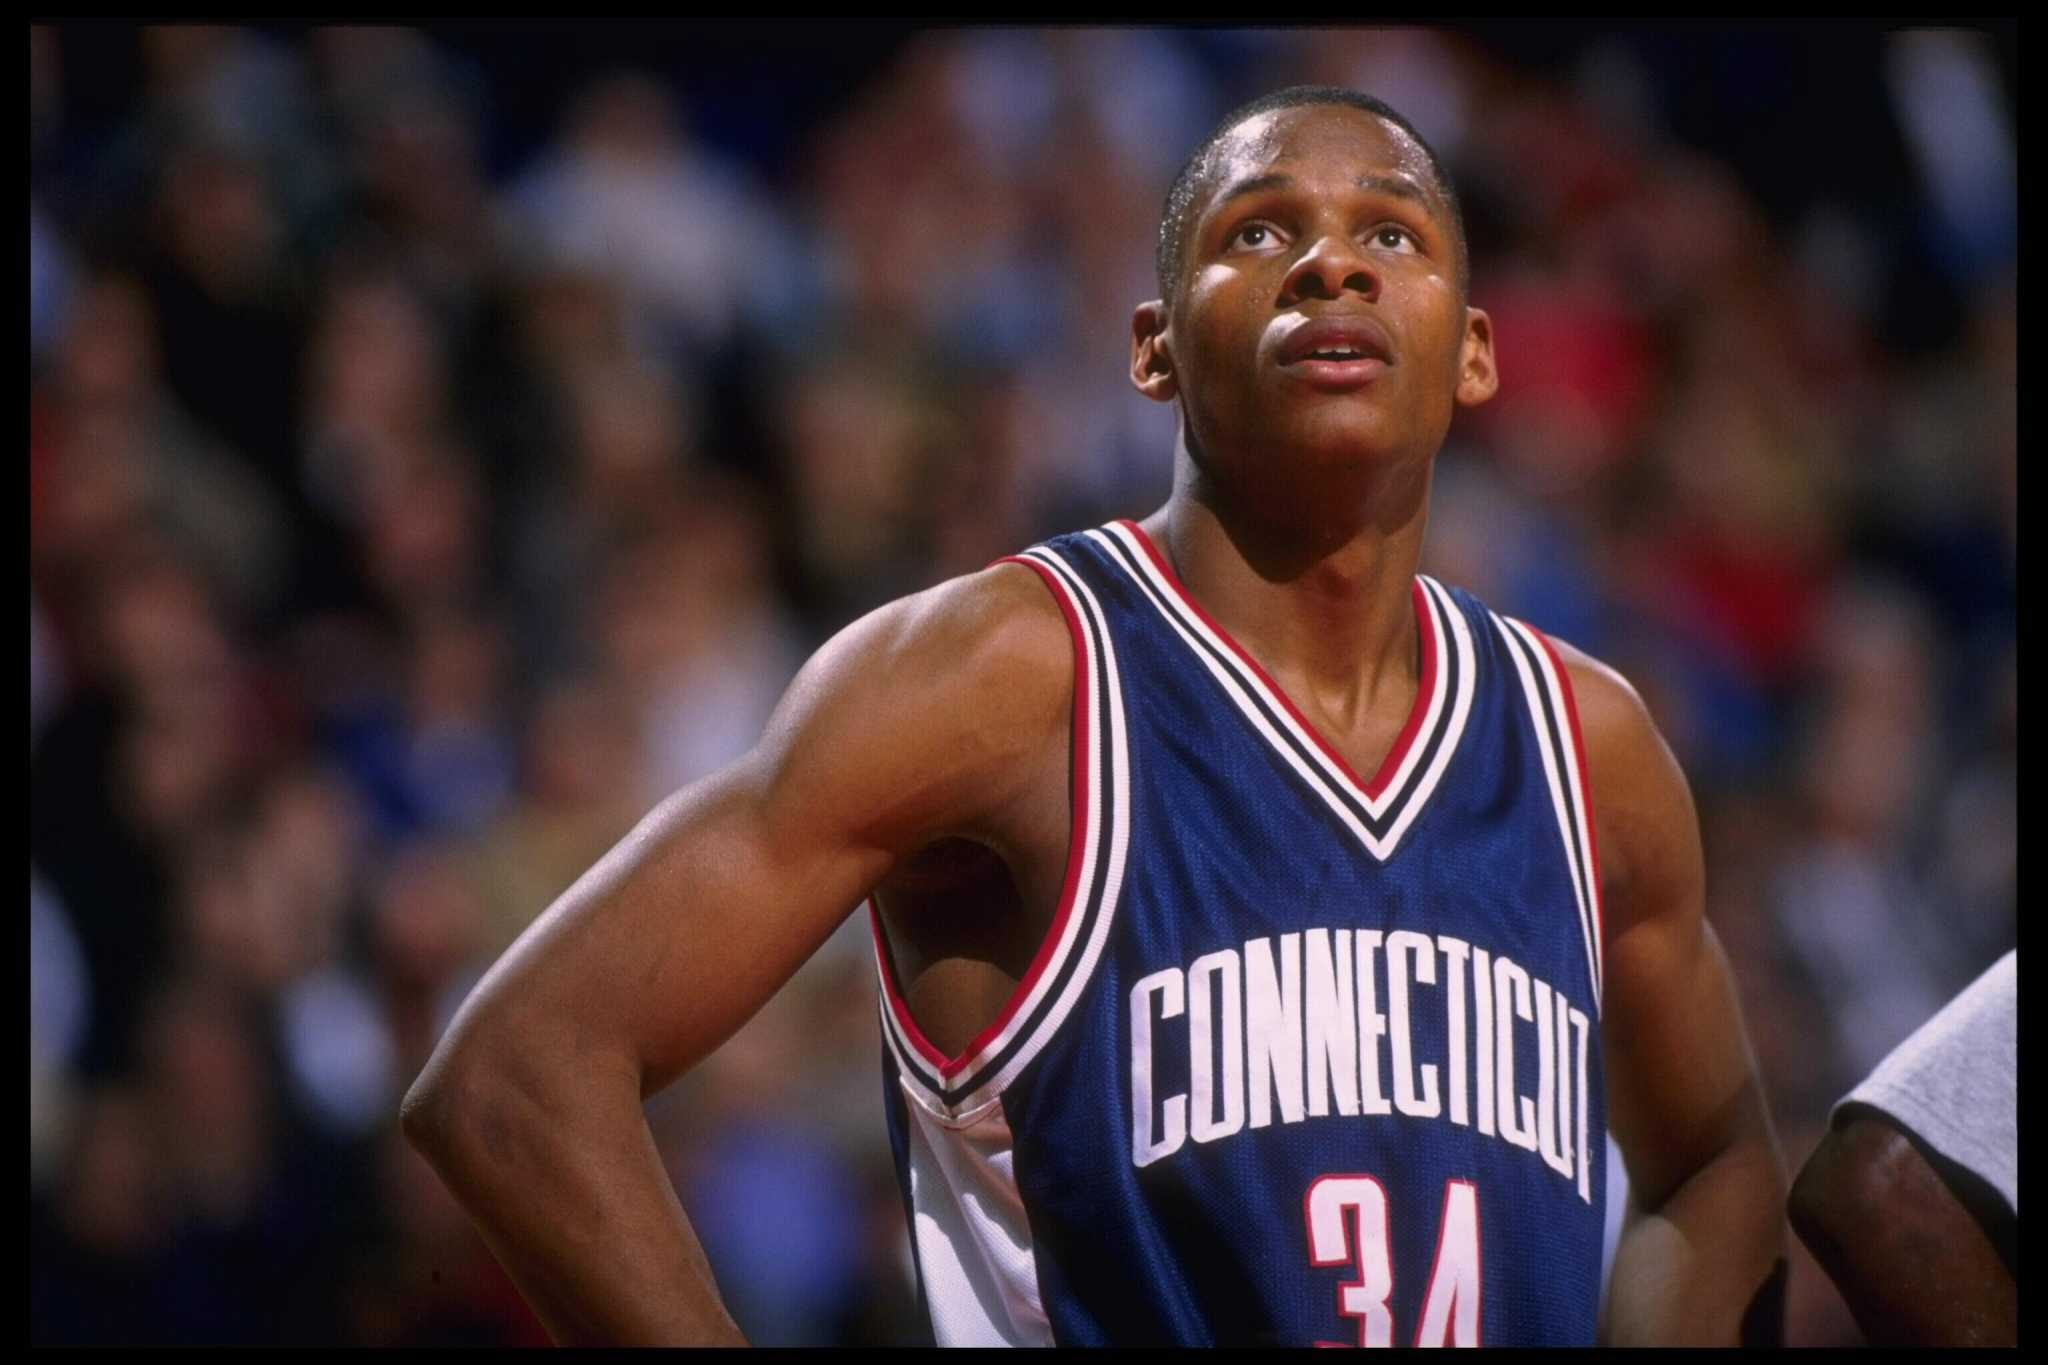 Memories of UConn icon Ray Allen as the Huskies retire his number